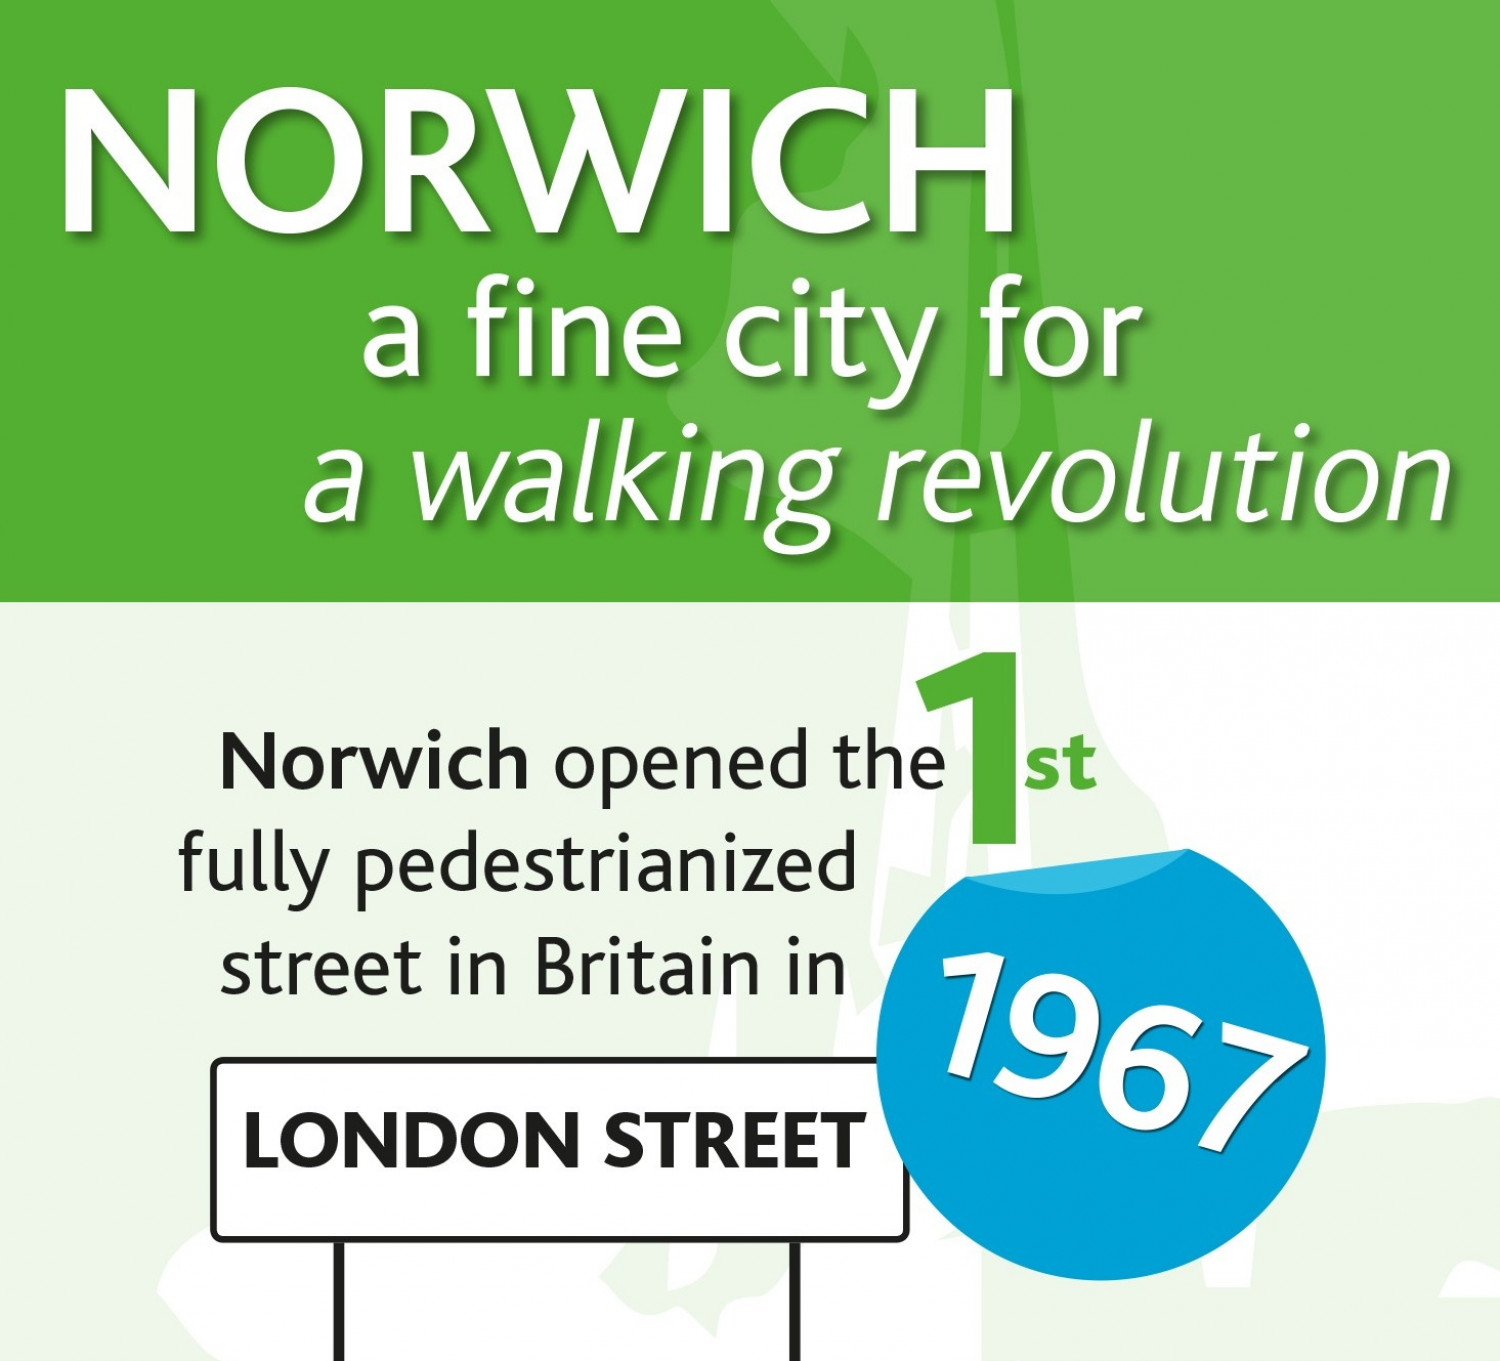 Norwich: A Fine City for a Walking Revolution Infographic